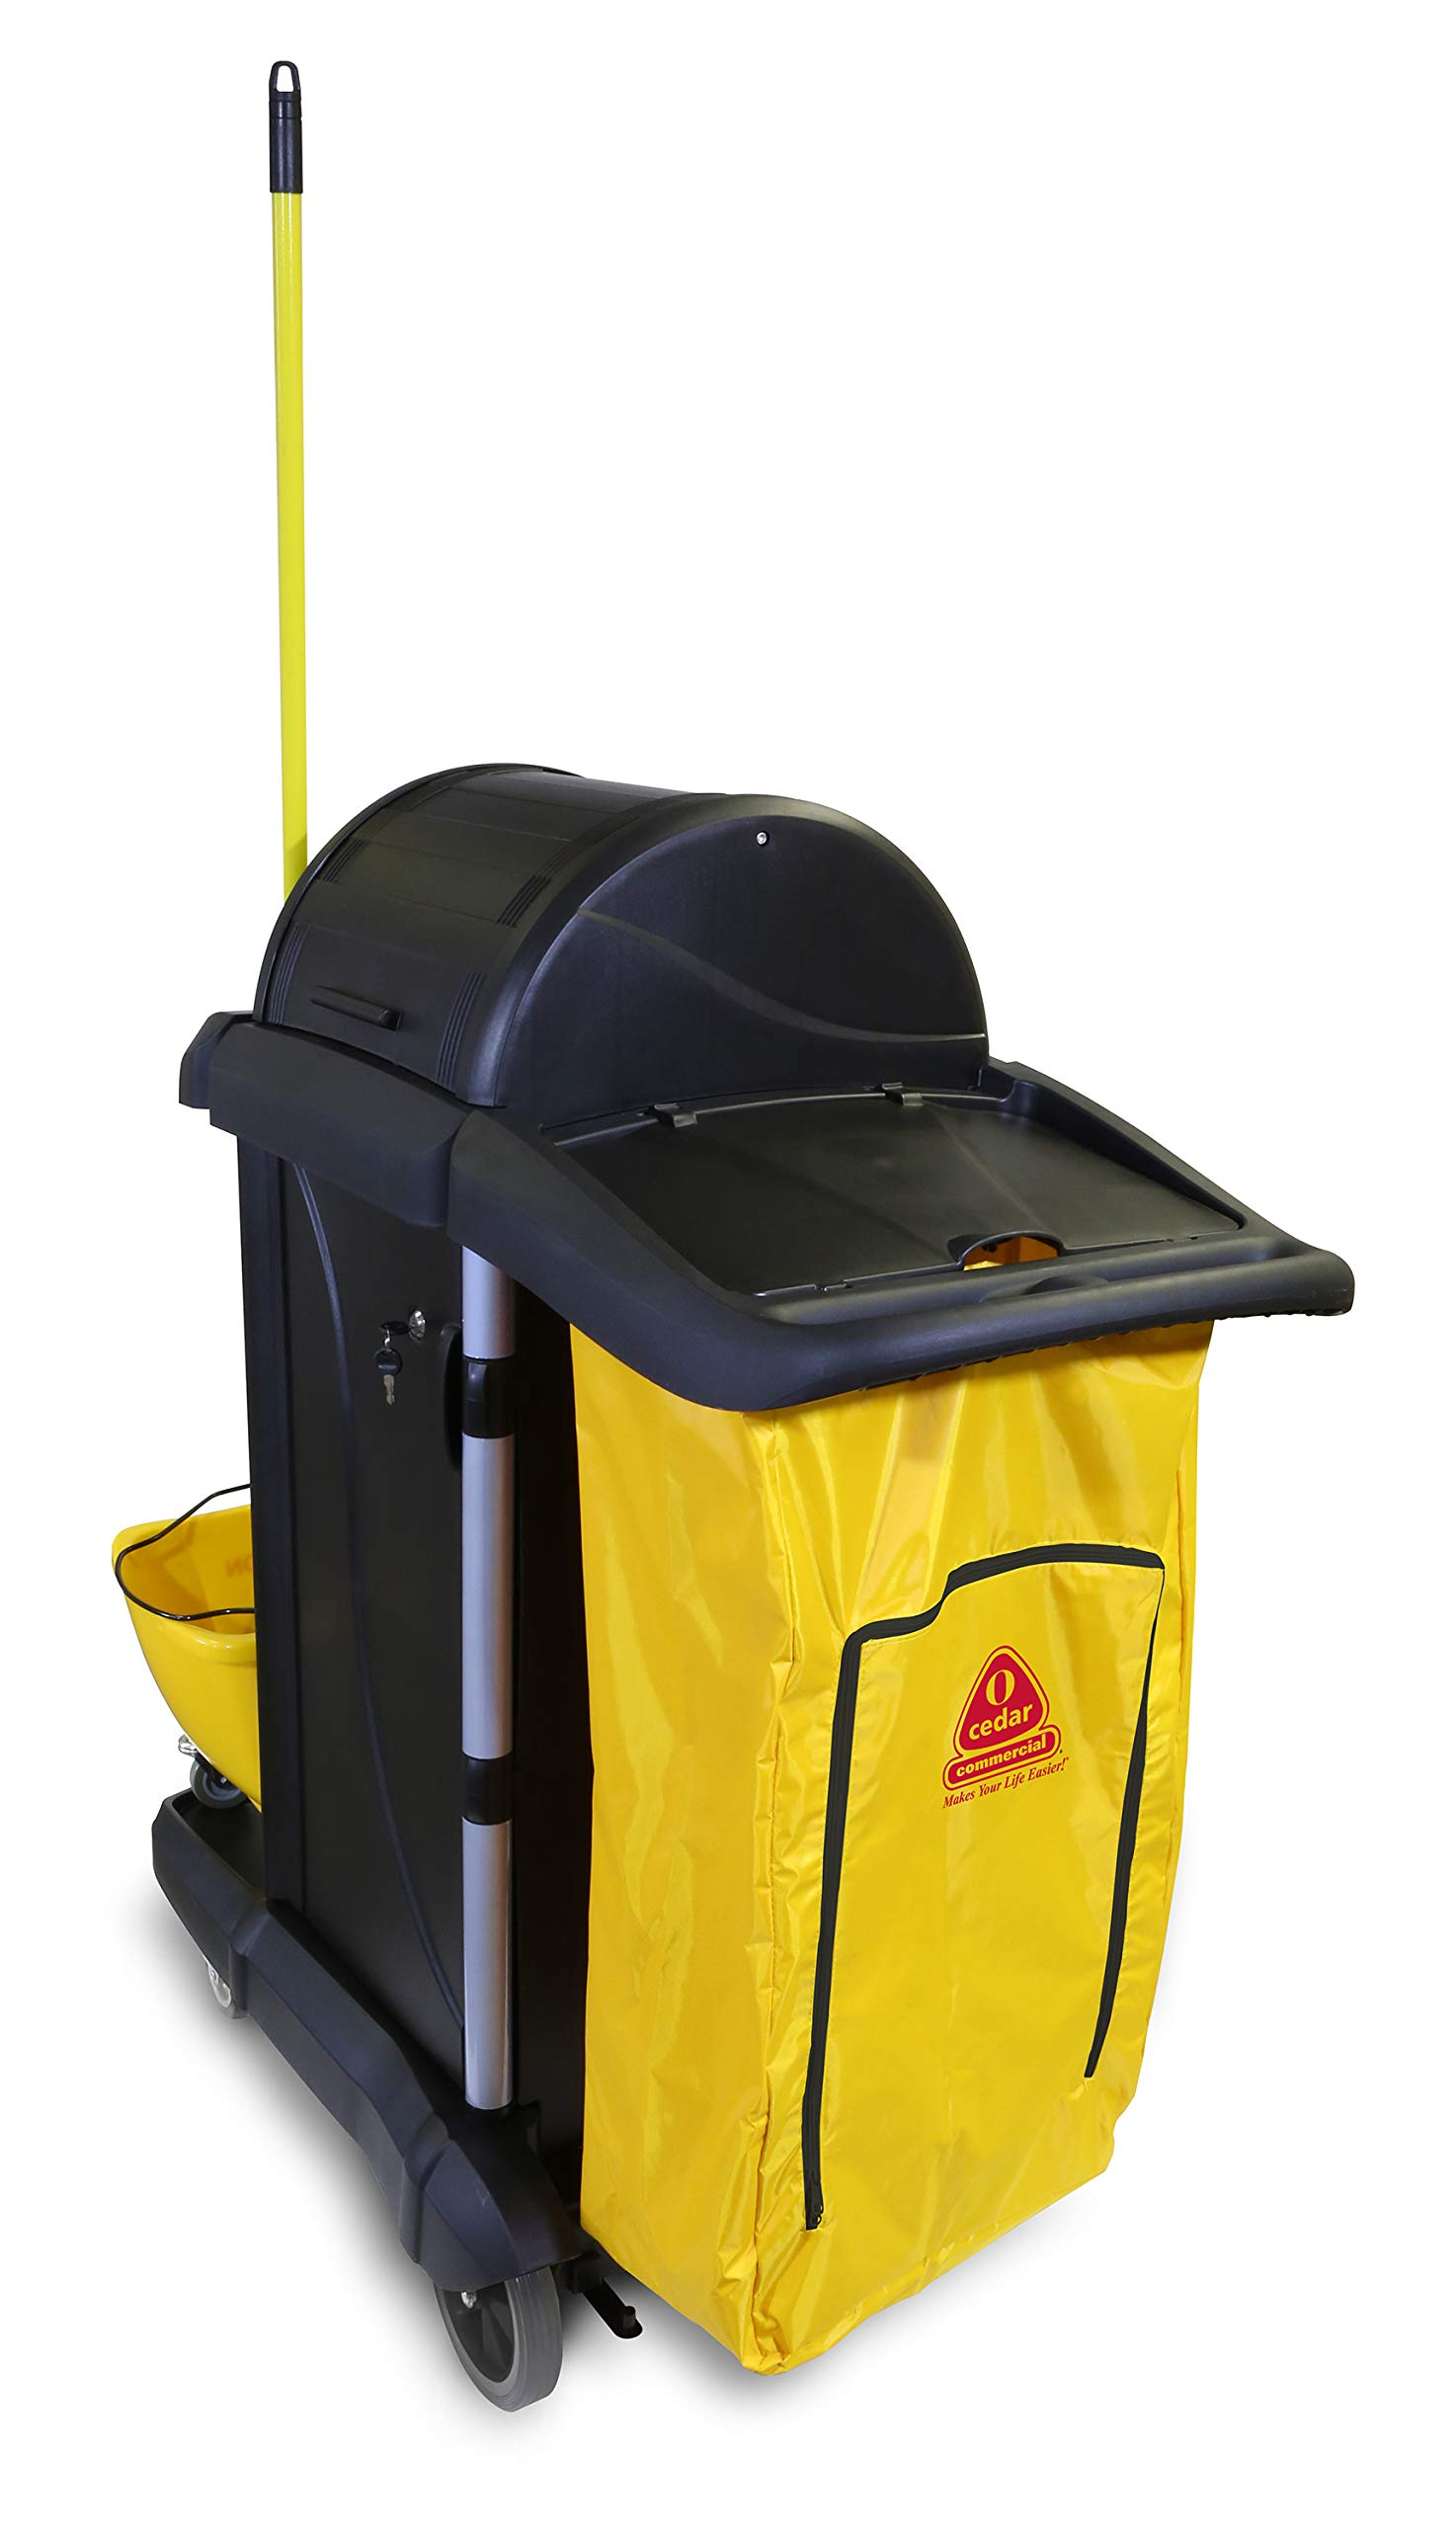 O'Cedar Commercial 96997 MaxiPlus Deluxe Janitor Cart (Pack of 1) by O-Cedar Commercial (Image #1)